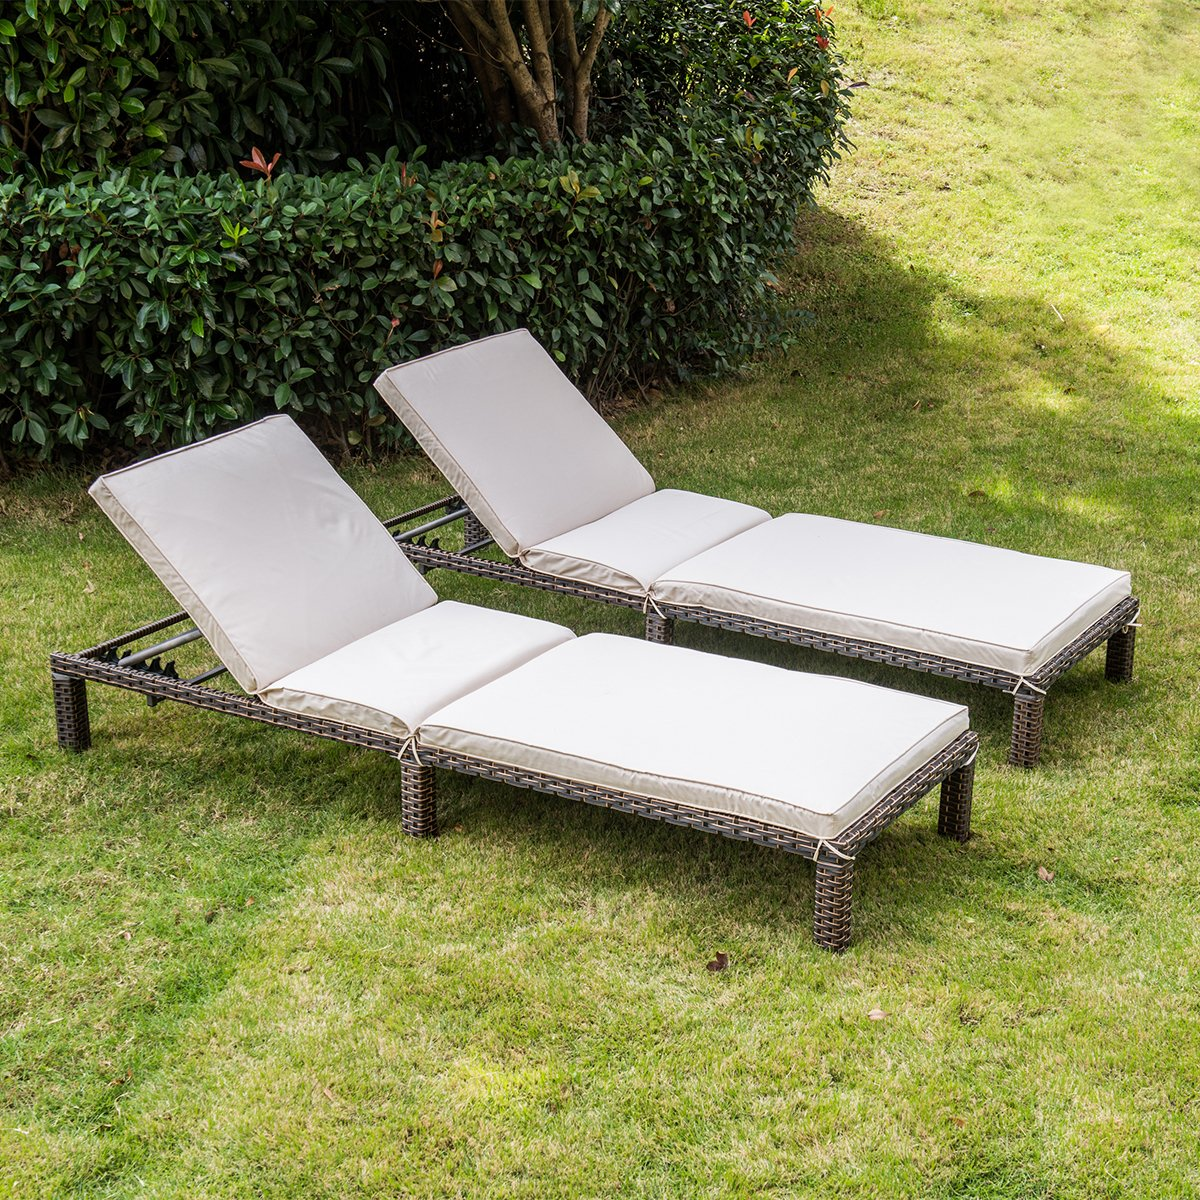 MAGIC UNION Patio Adjustable Wicker Chaise Lounge with Cushions Sets of 2